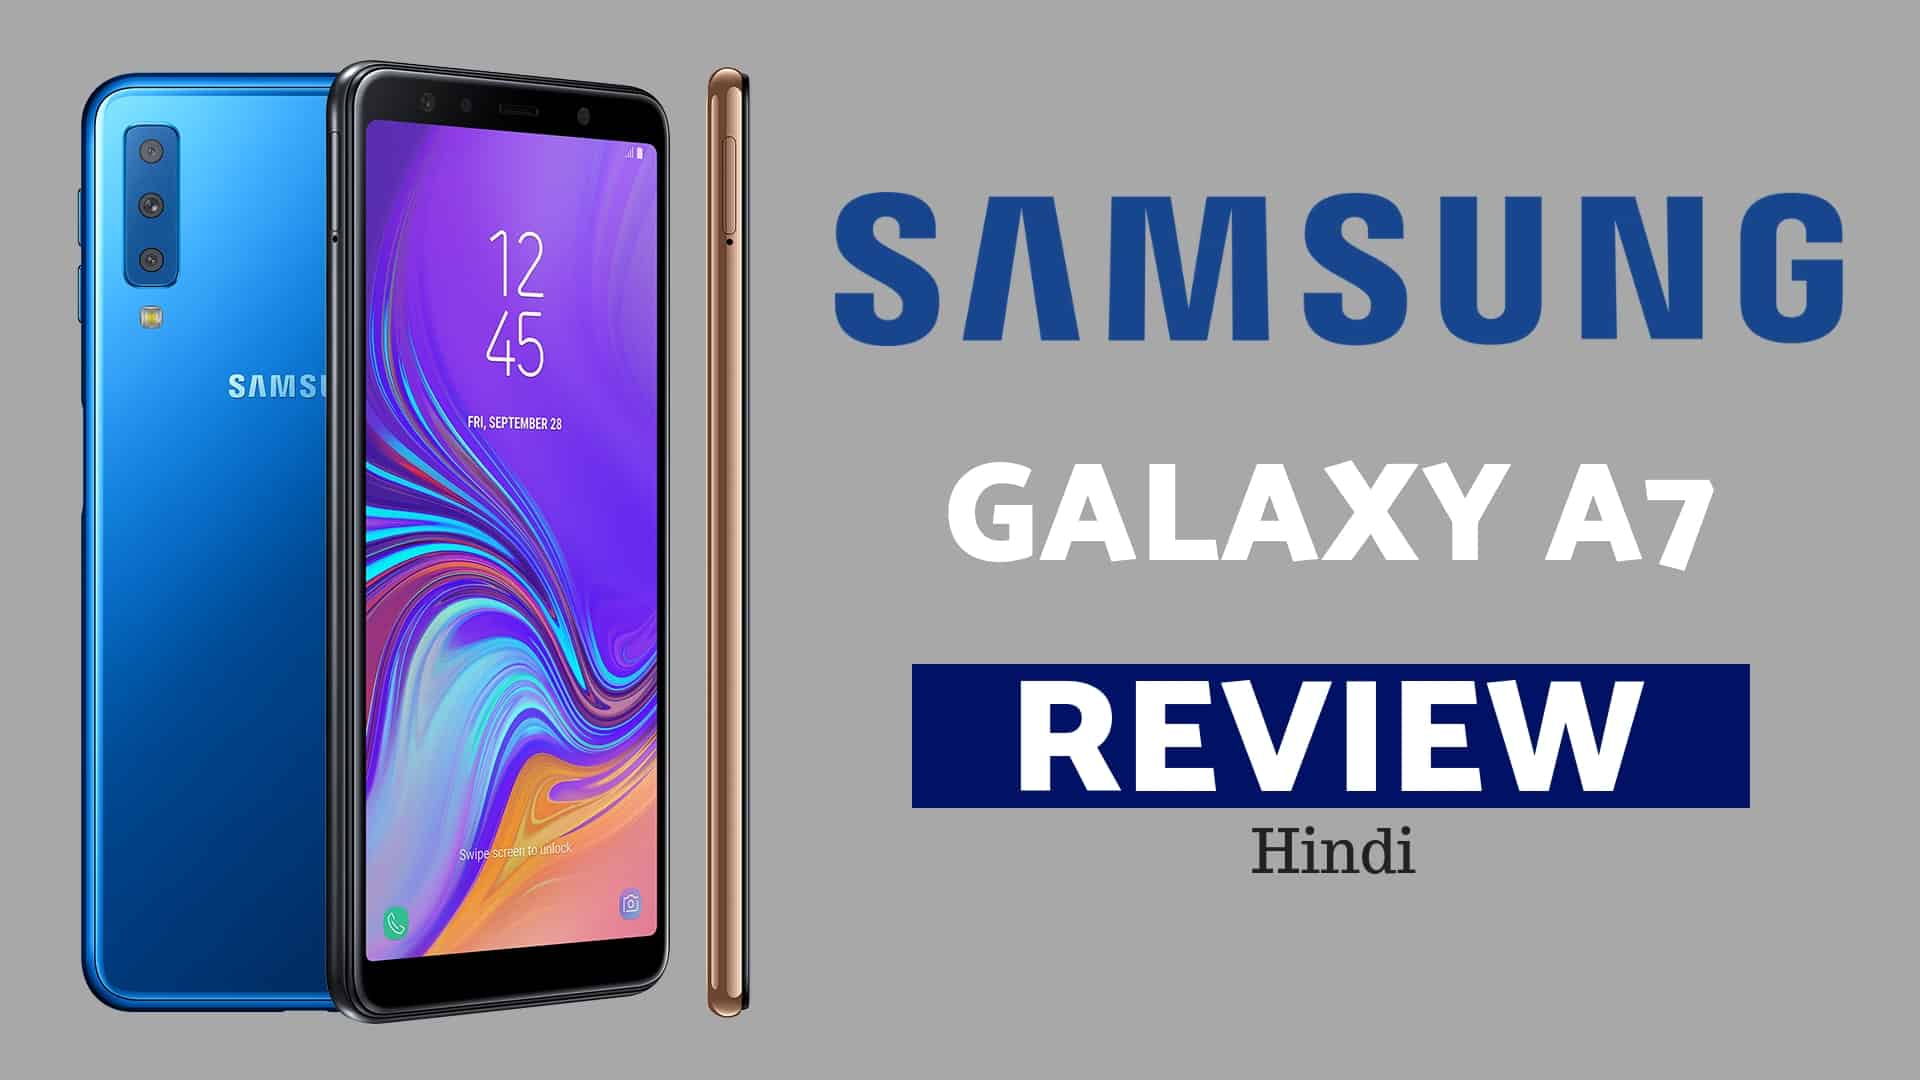 Samsung Galaxy A7 Review In Hindi -  24MP+24MP & 3 Back Camera